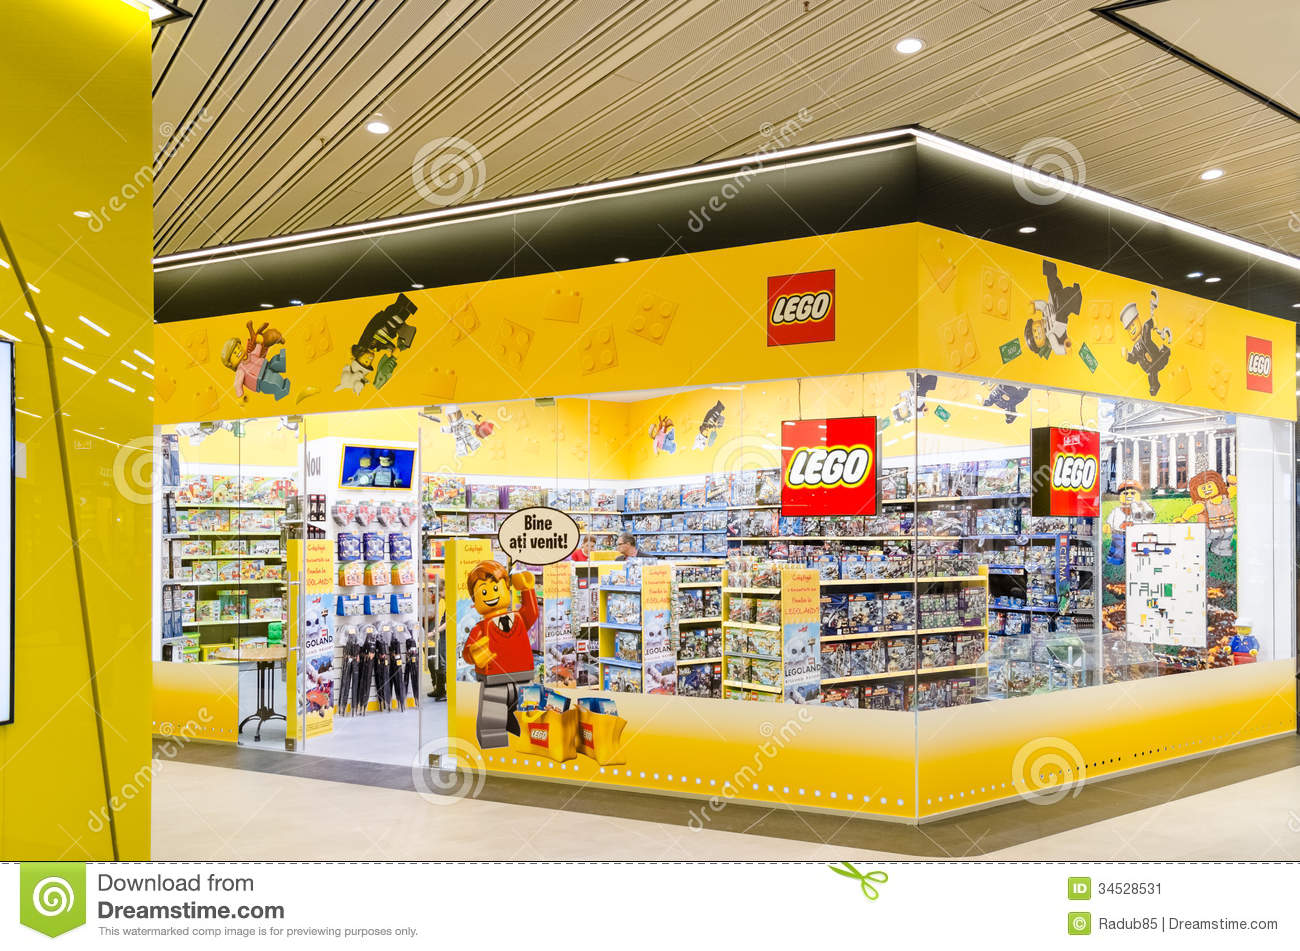 BUCHAREST, ROMANIA - OCTOBER 18: Lego Shop on October 18, 2013 in ...